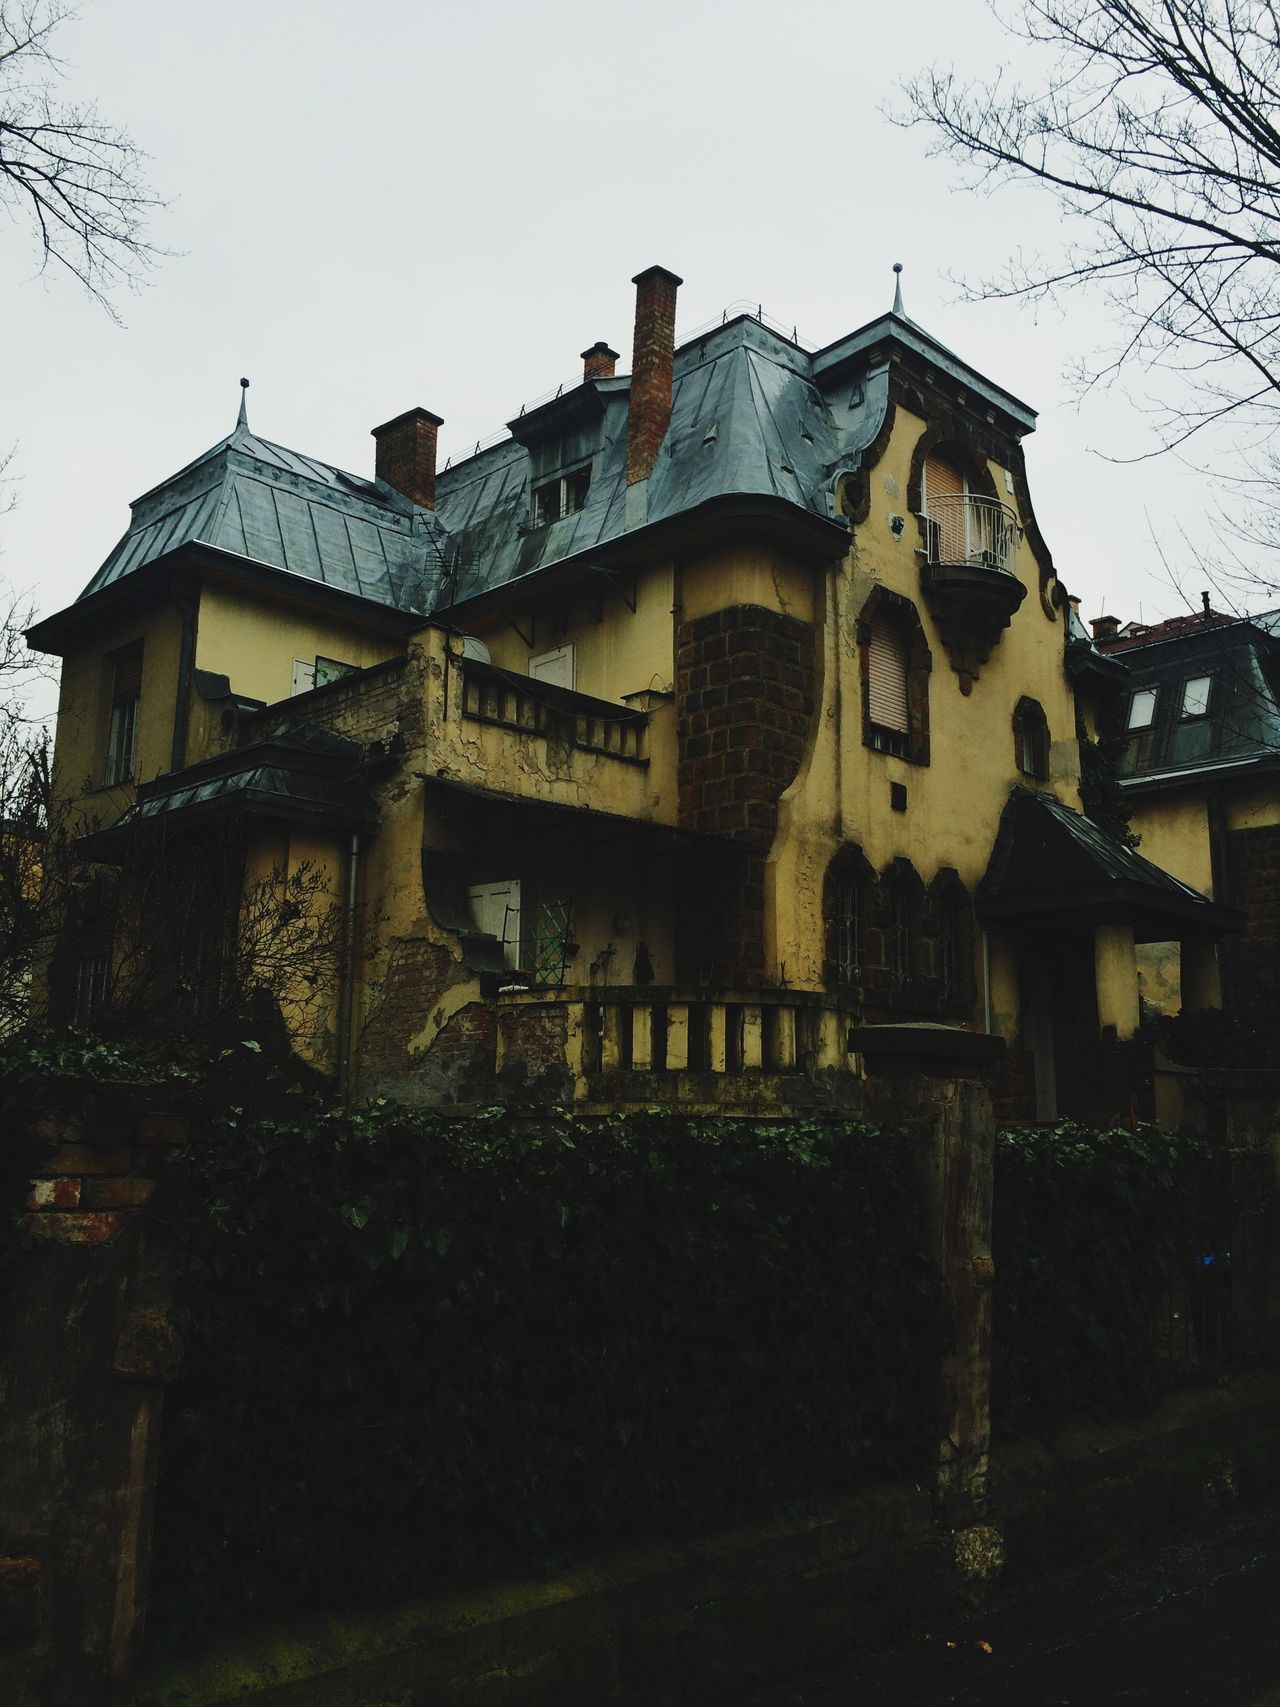 Check This Out Showcase: February Hounted Hounted House Creepy Scary Horror Horror Photography Mood Dark Art Photography City Budapest Budapest, Hungary Hungary Hidden Hidden Places Hidden Beauty Beautiful Architecture Architecturelovers Architectureporn Old Building